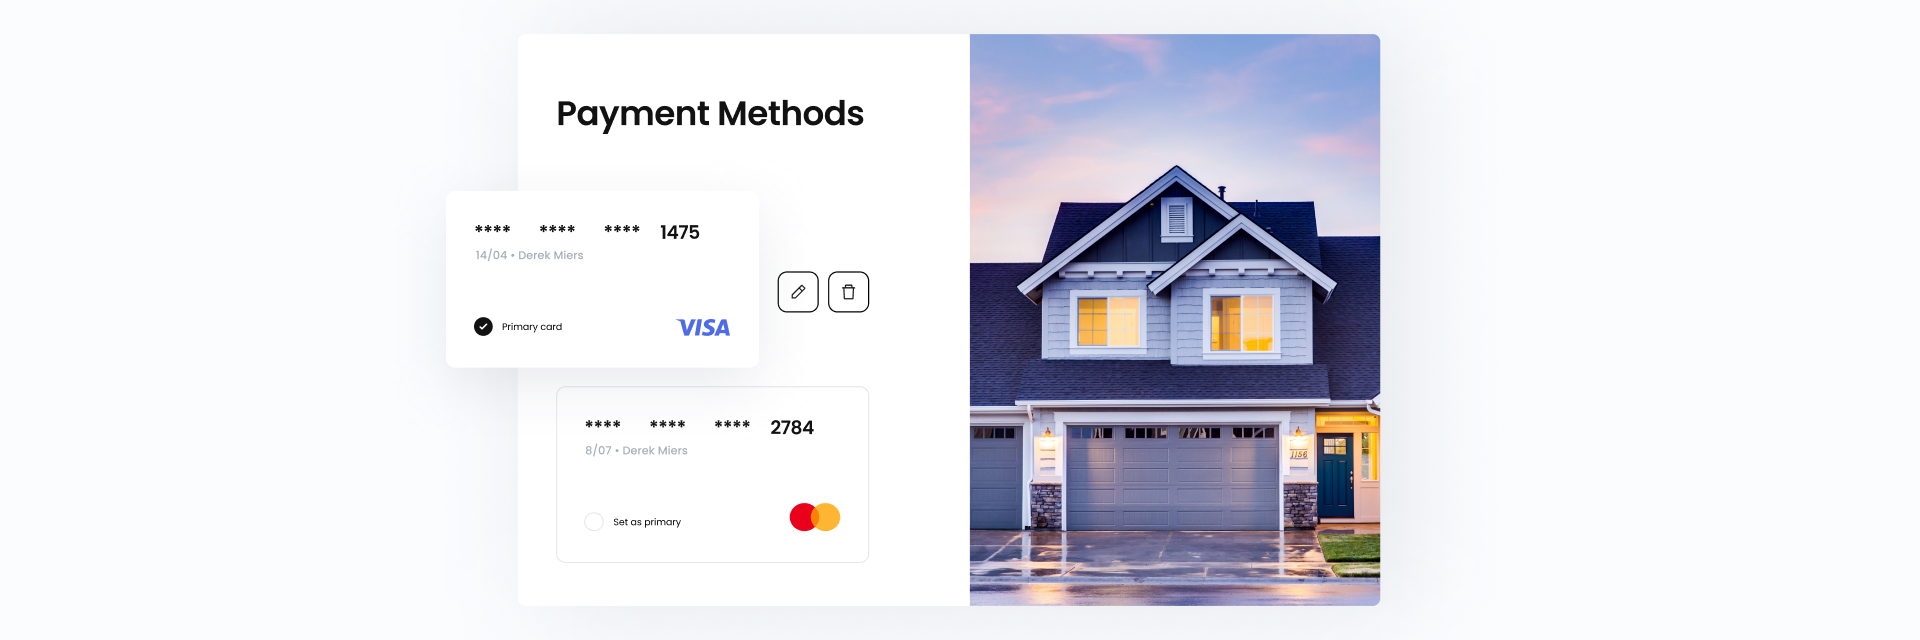 Marketplace payment page